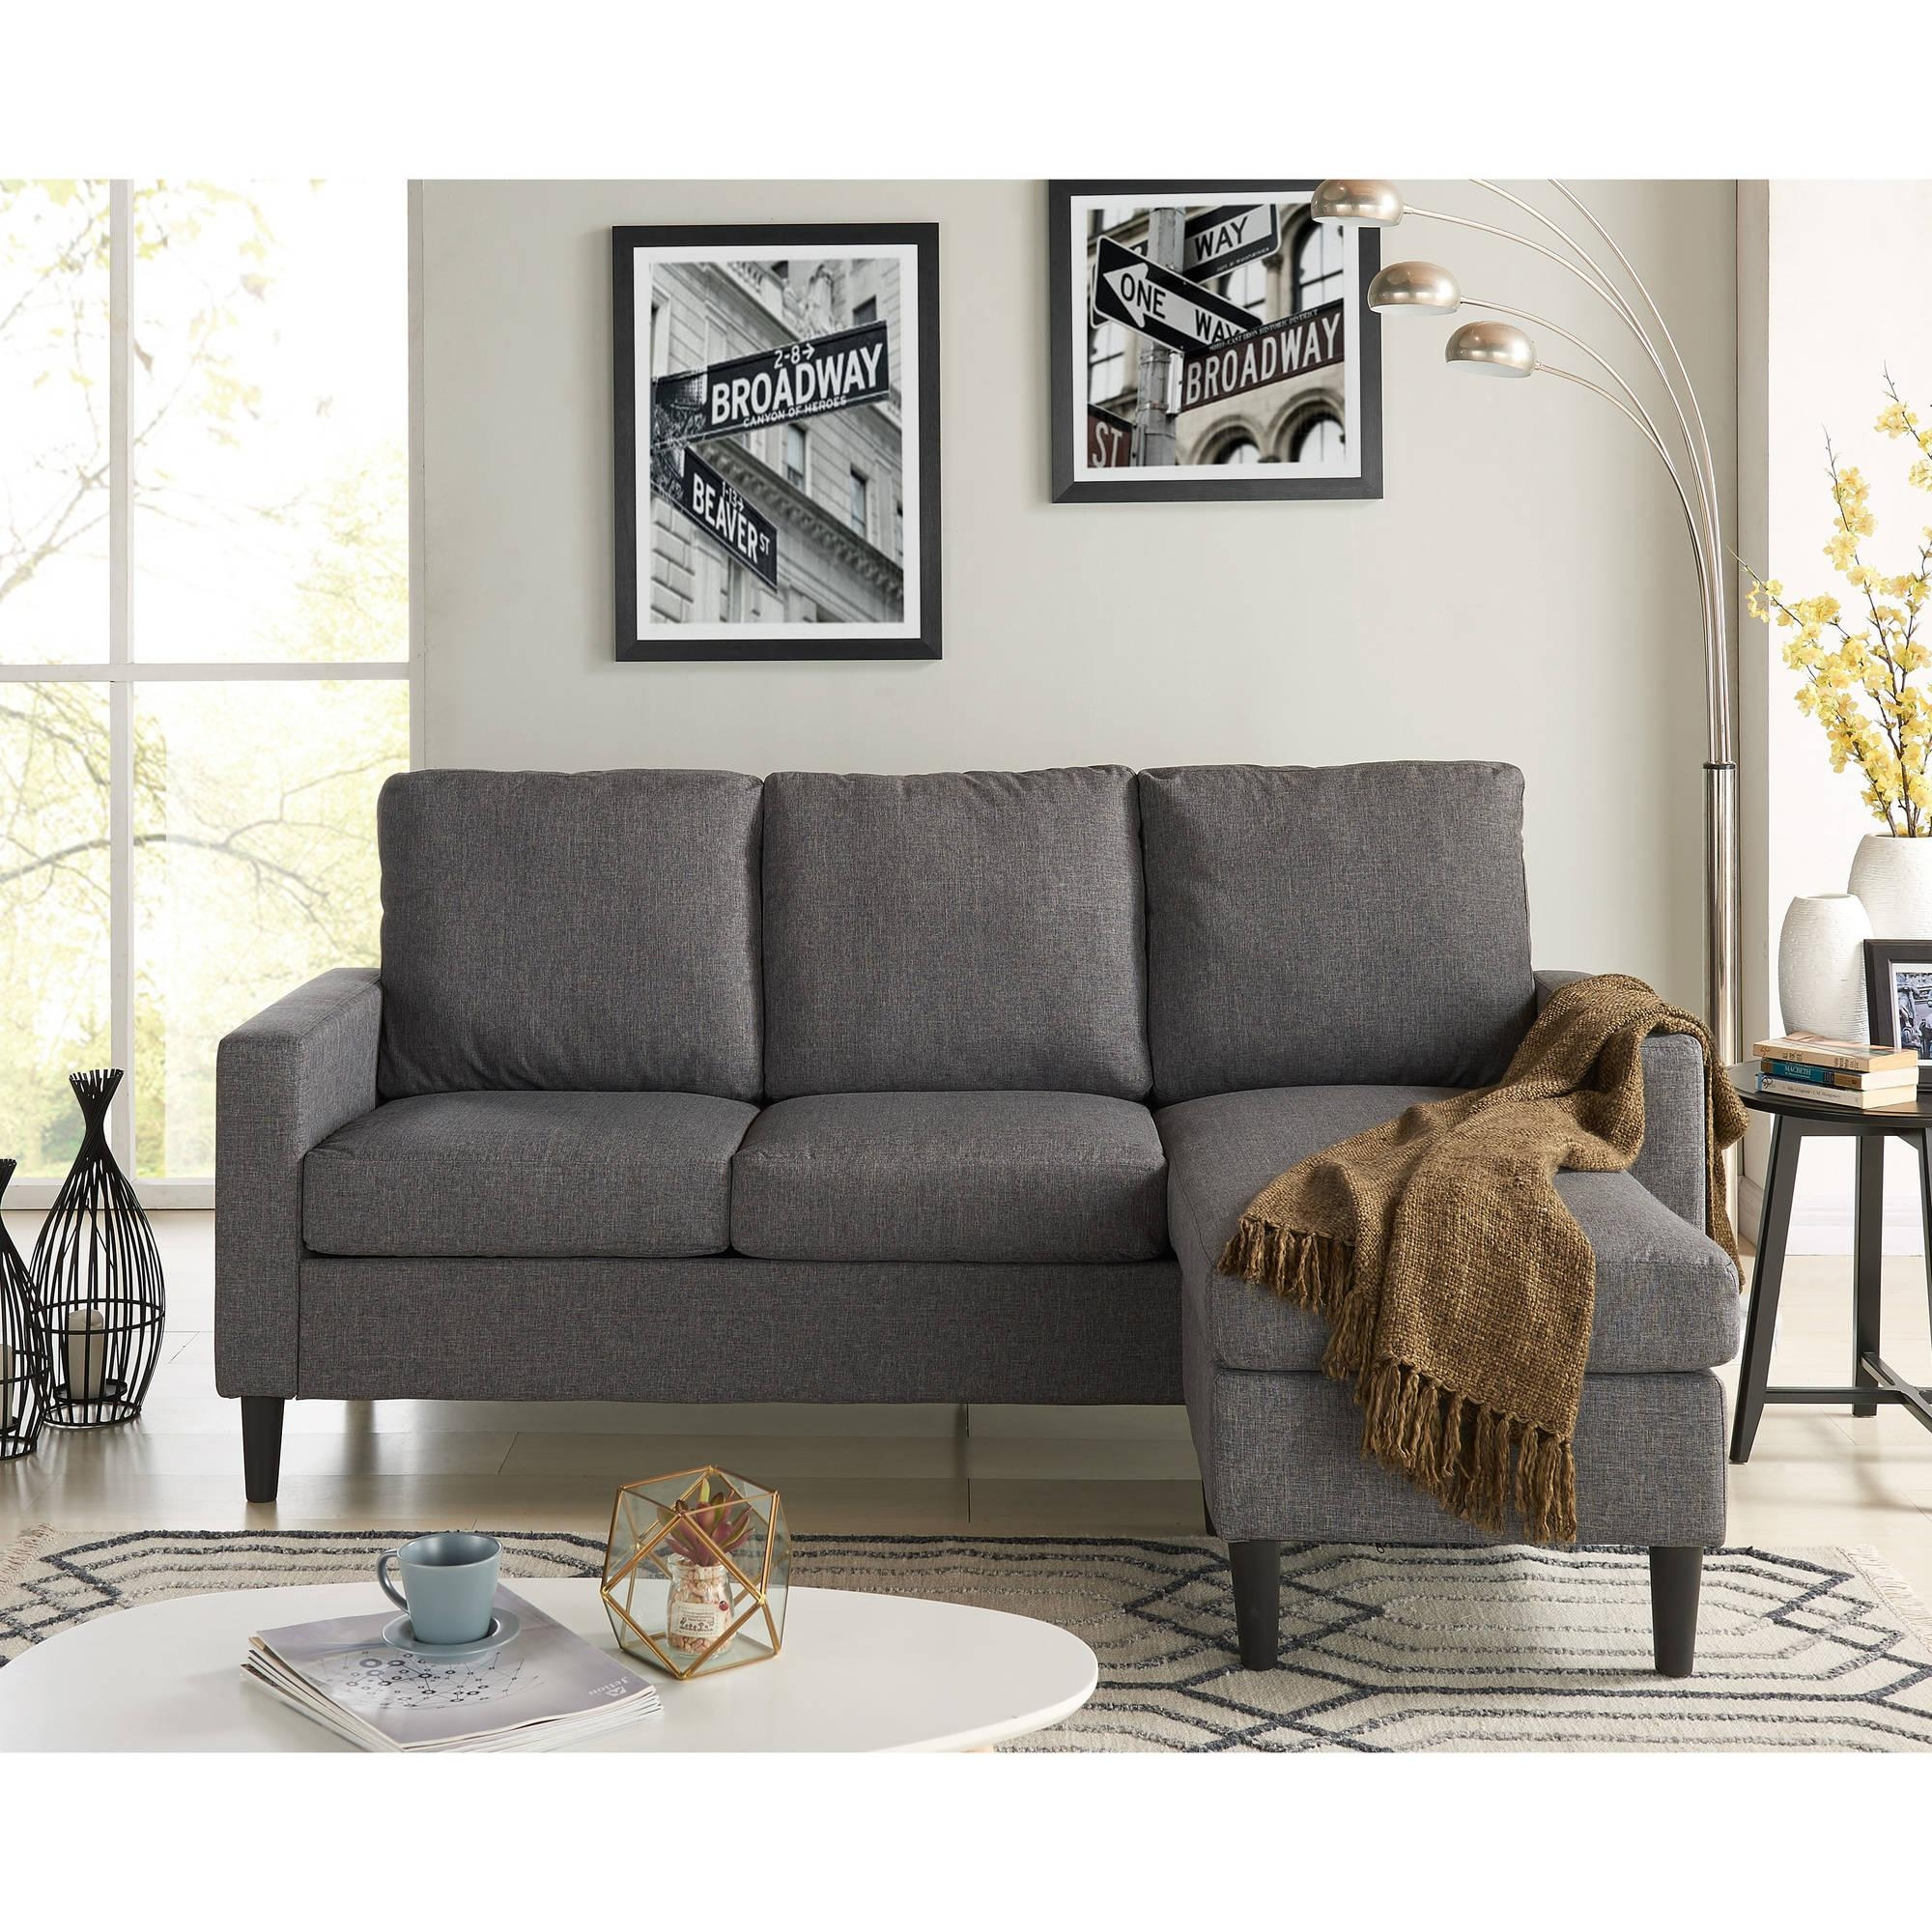 Mainstays Apartment Reversible Sectional – Walmart Pertaining To Mainstay Sofas (Image 6 of 20)